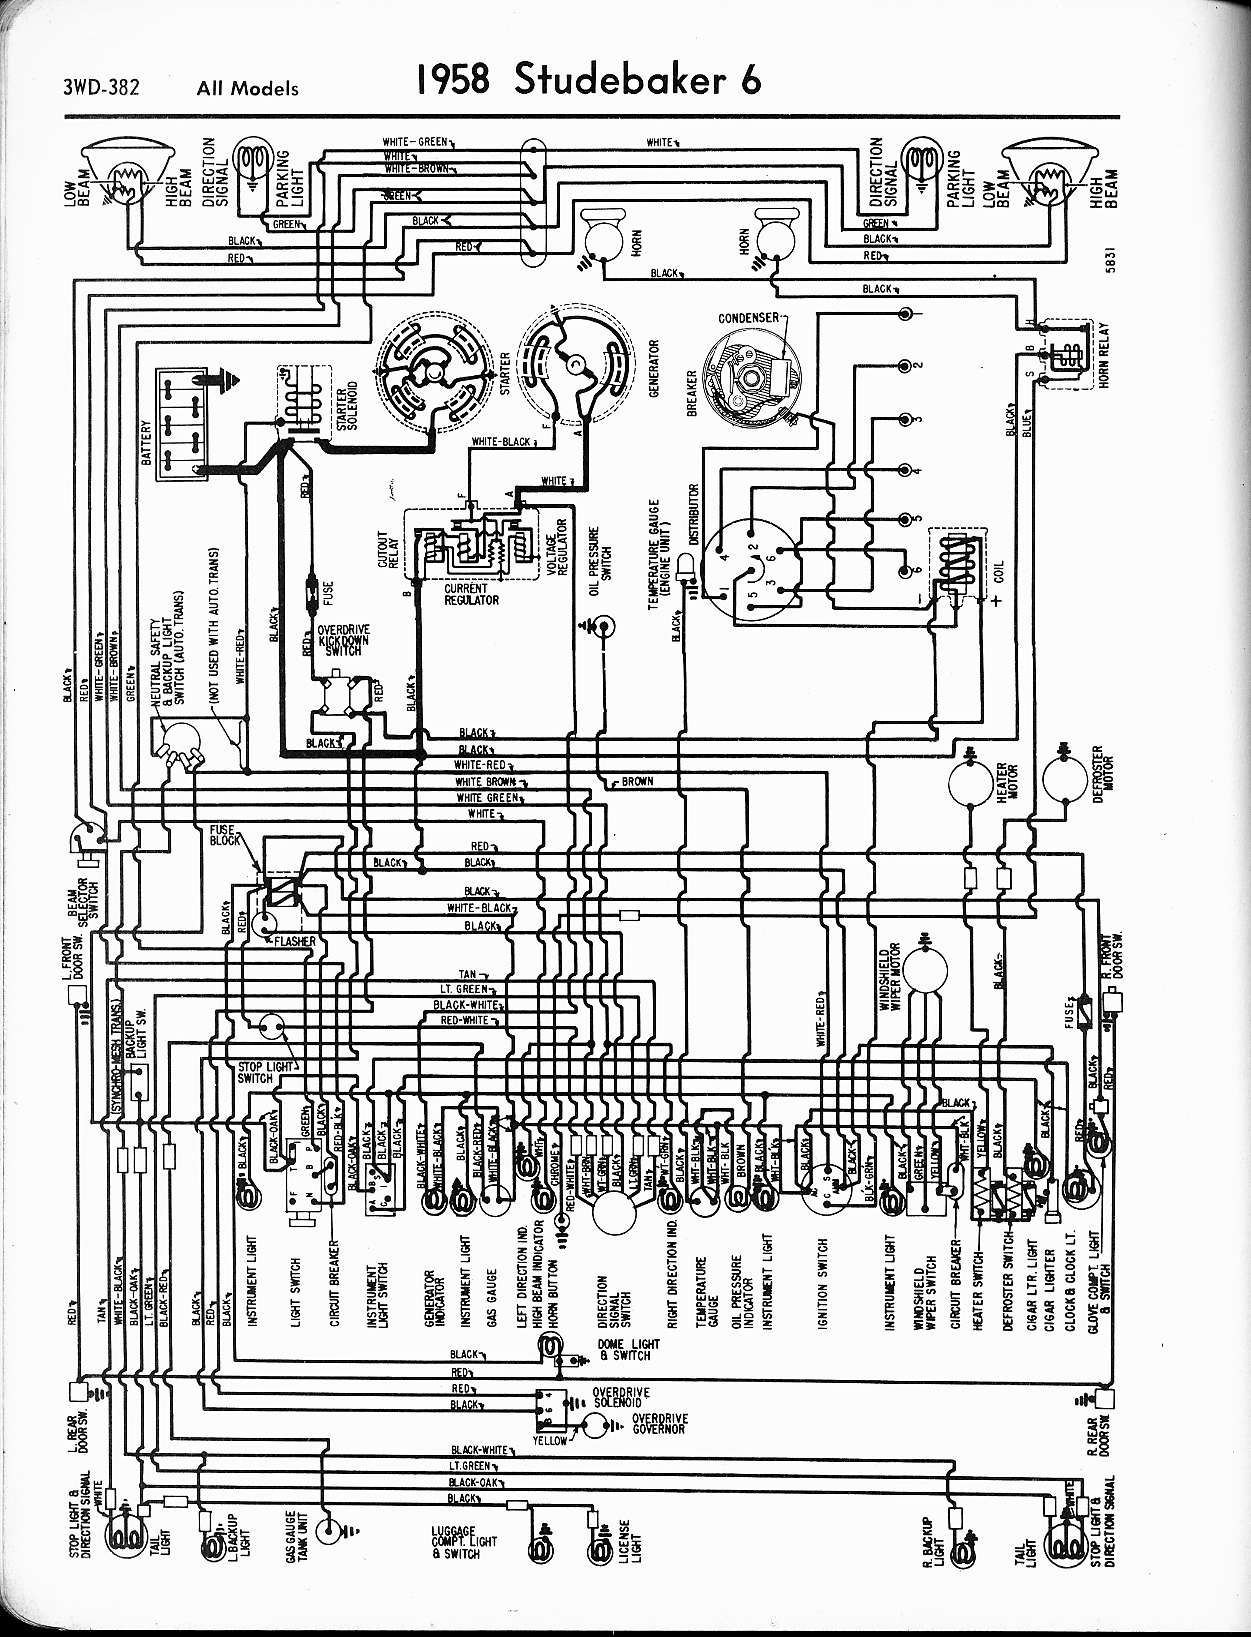 plete Electrical Wiring Diagram For 1939 Chevrolet Truck besides Morgan Plus 4 Wiring Diagram together with Schematics i also Catalog3 likewise 1964 Chevy Bel Air Wiring Diagram Html. on 1958 chevy impala wiring diagrams